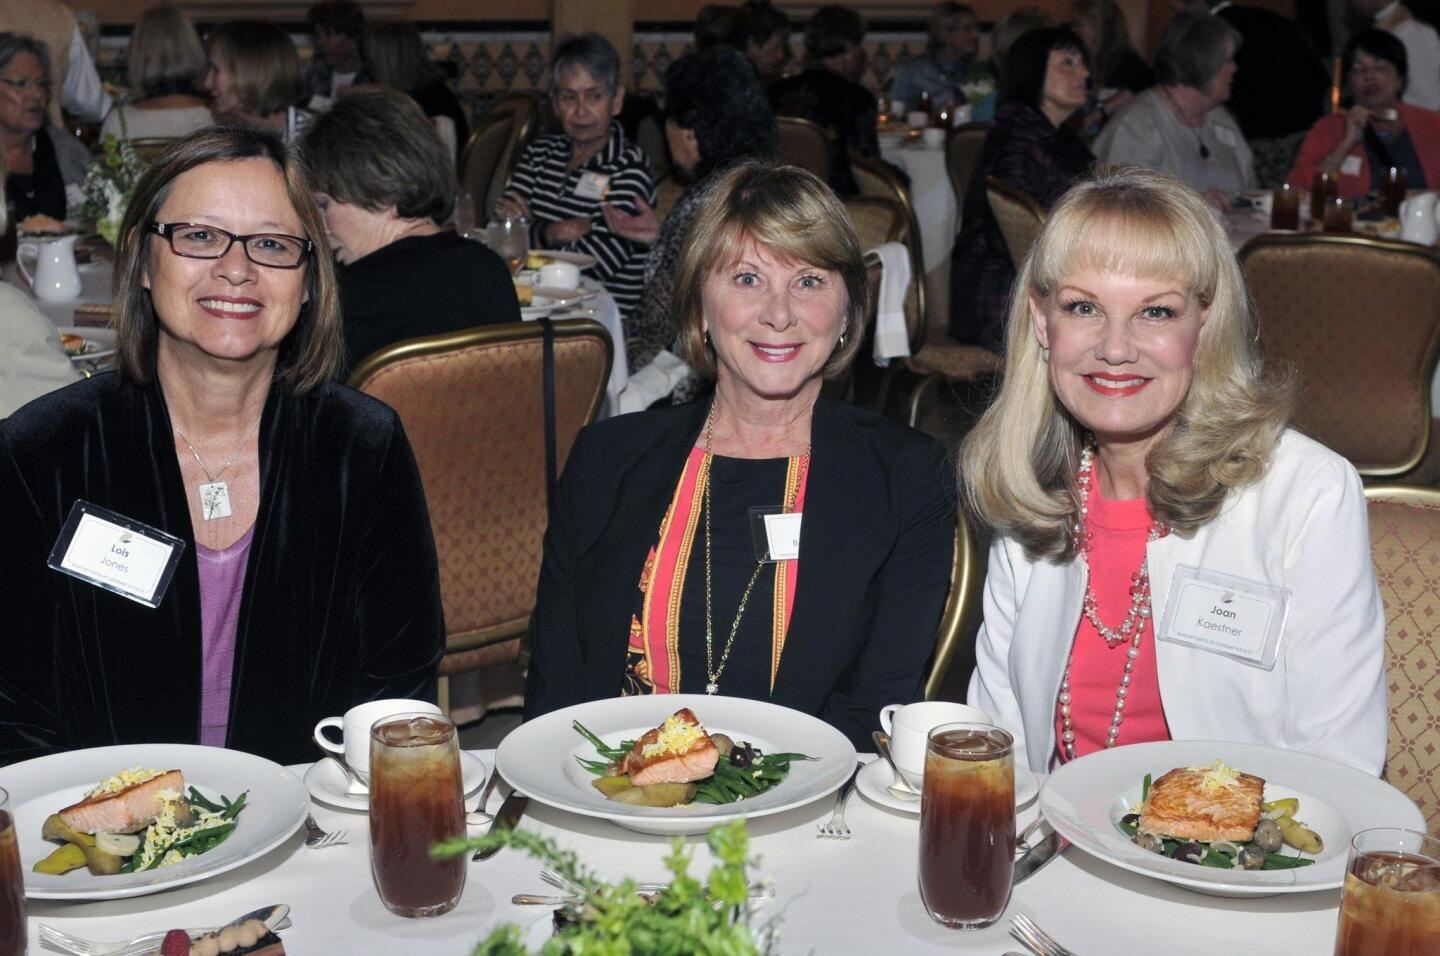 Lois Jones, Lindy Bowman, Joan Kaestner